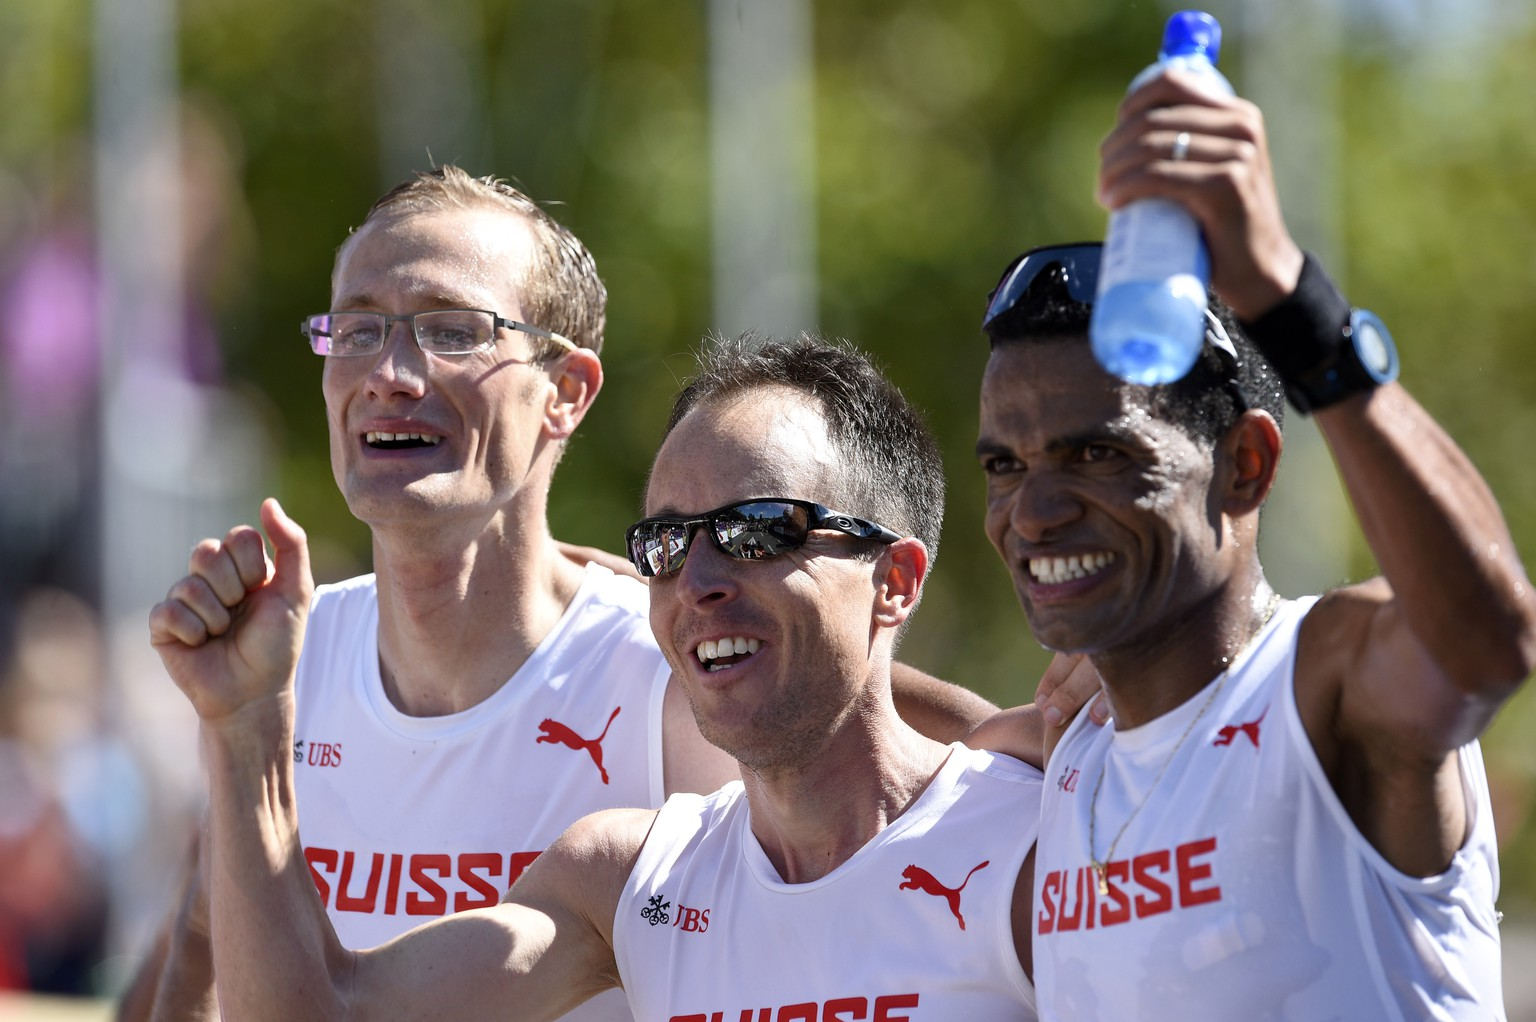 Switzerland's Christian Kreienbuehl, Viktor Roethlin and Tadesse Abraham, from left to right, cheers, after winning the team event gold in the men's Marathon in the city centre of Zurich, at the sixth day of the European Athletics Championships in the Letzigrund Stadium in Zurich, Switzerland, Sunday, August 17, 2014. (KEYSTONE/Ennio Leanza)